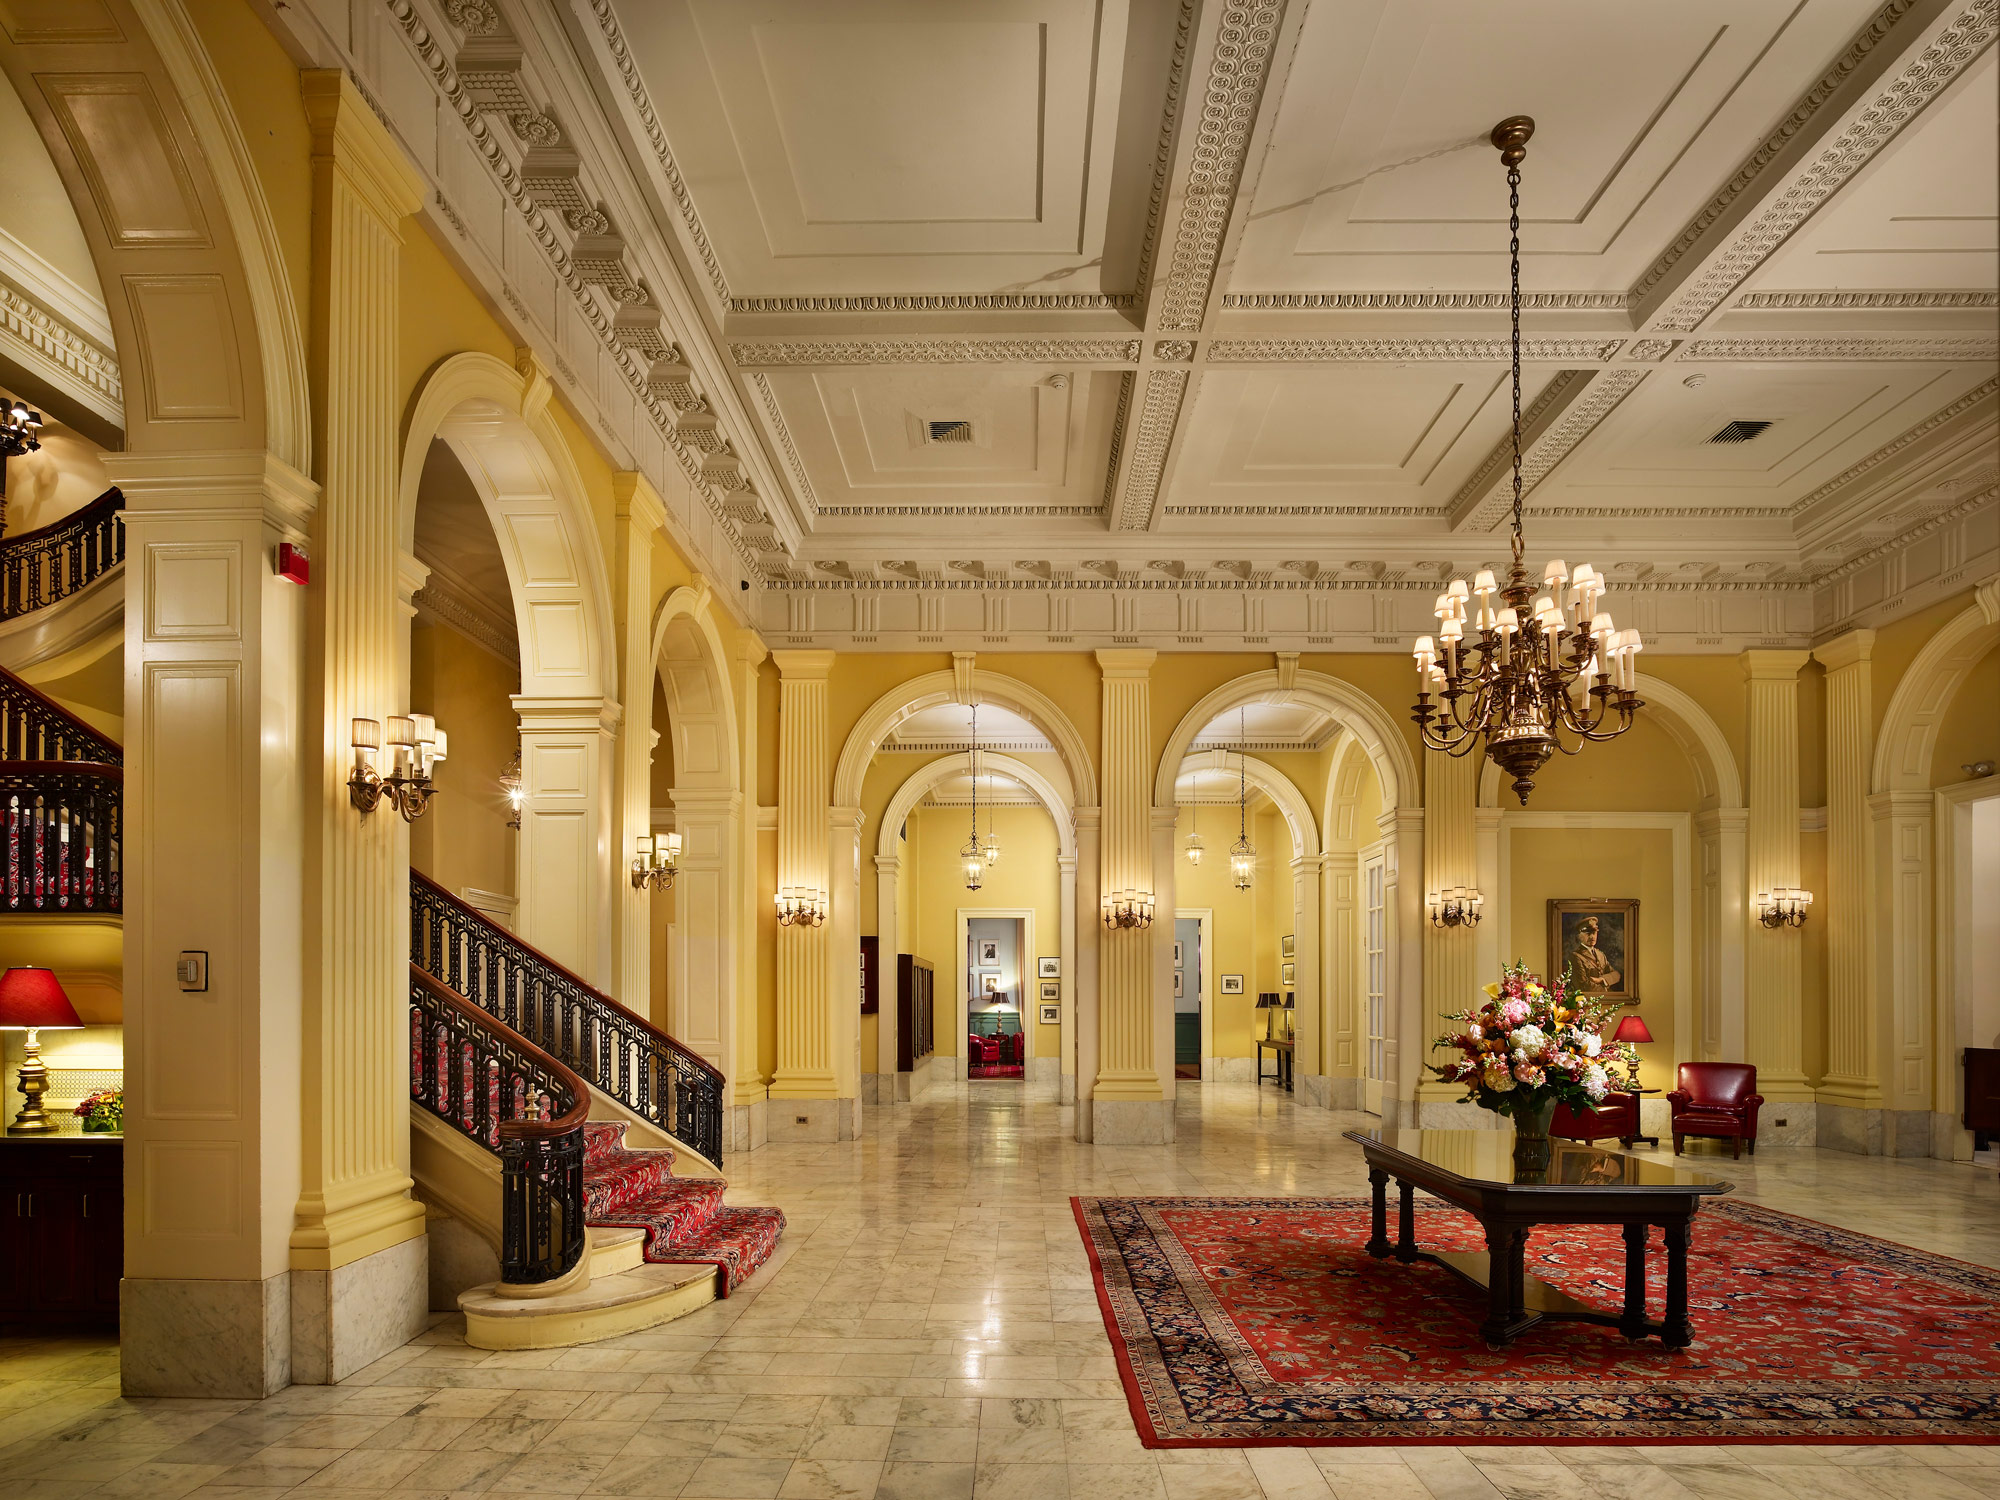 The Lobby at The Racquet Club of Philadelphia